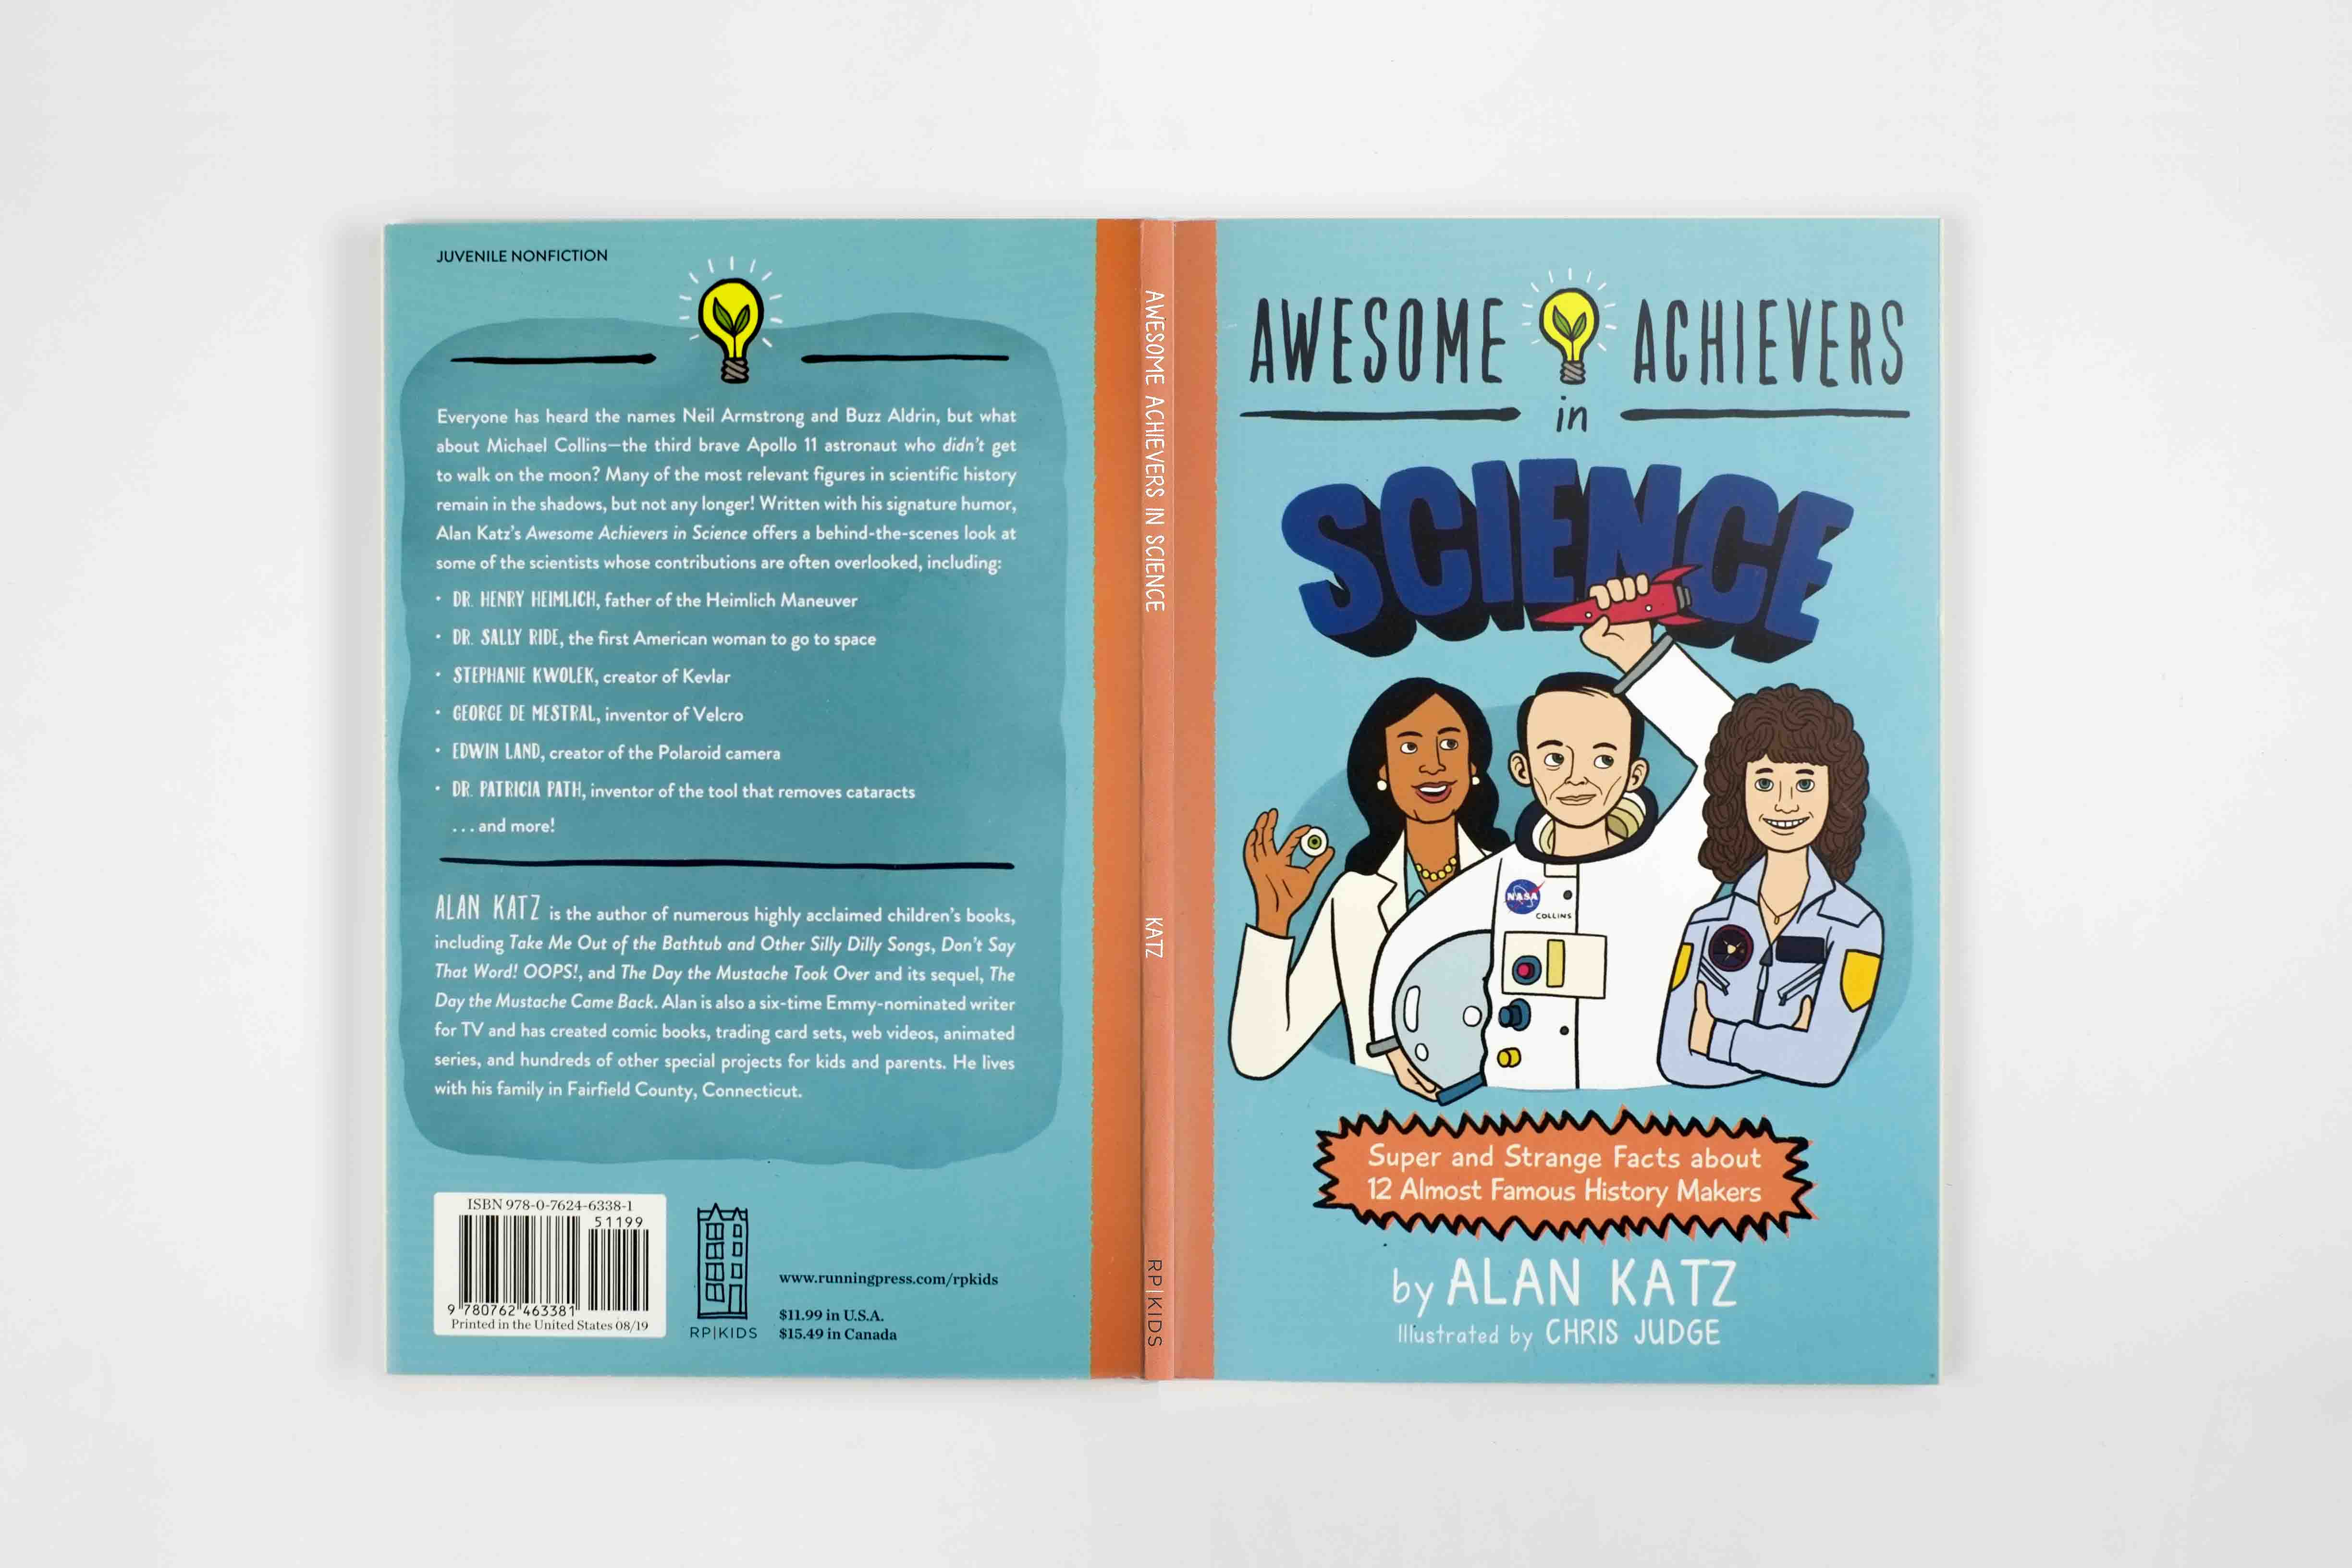 AwesomeAchieversSci_Cov